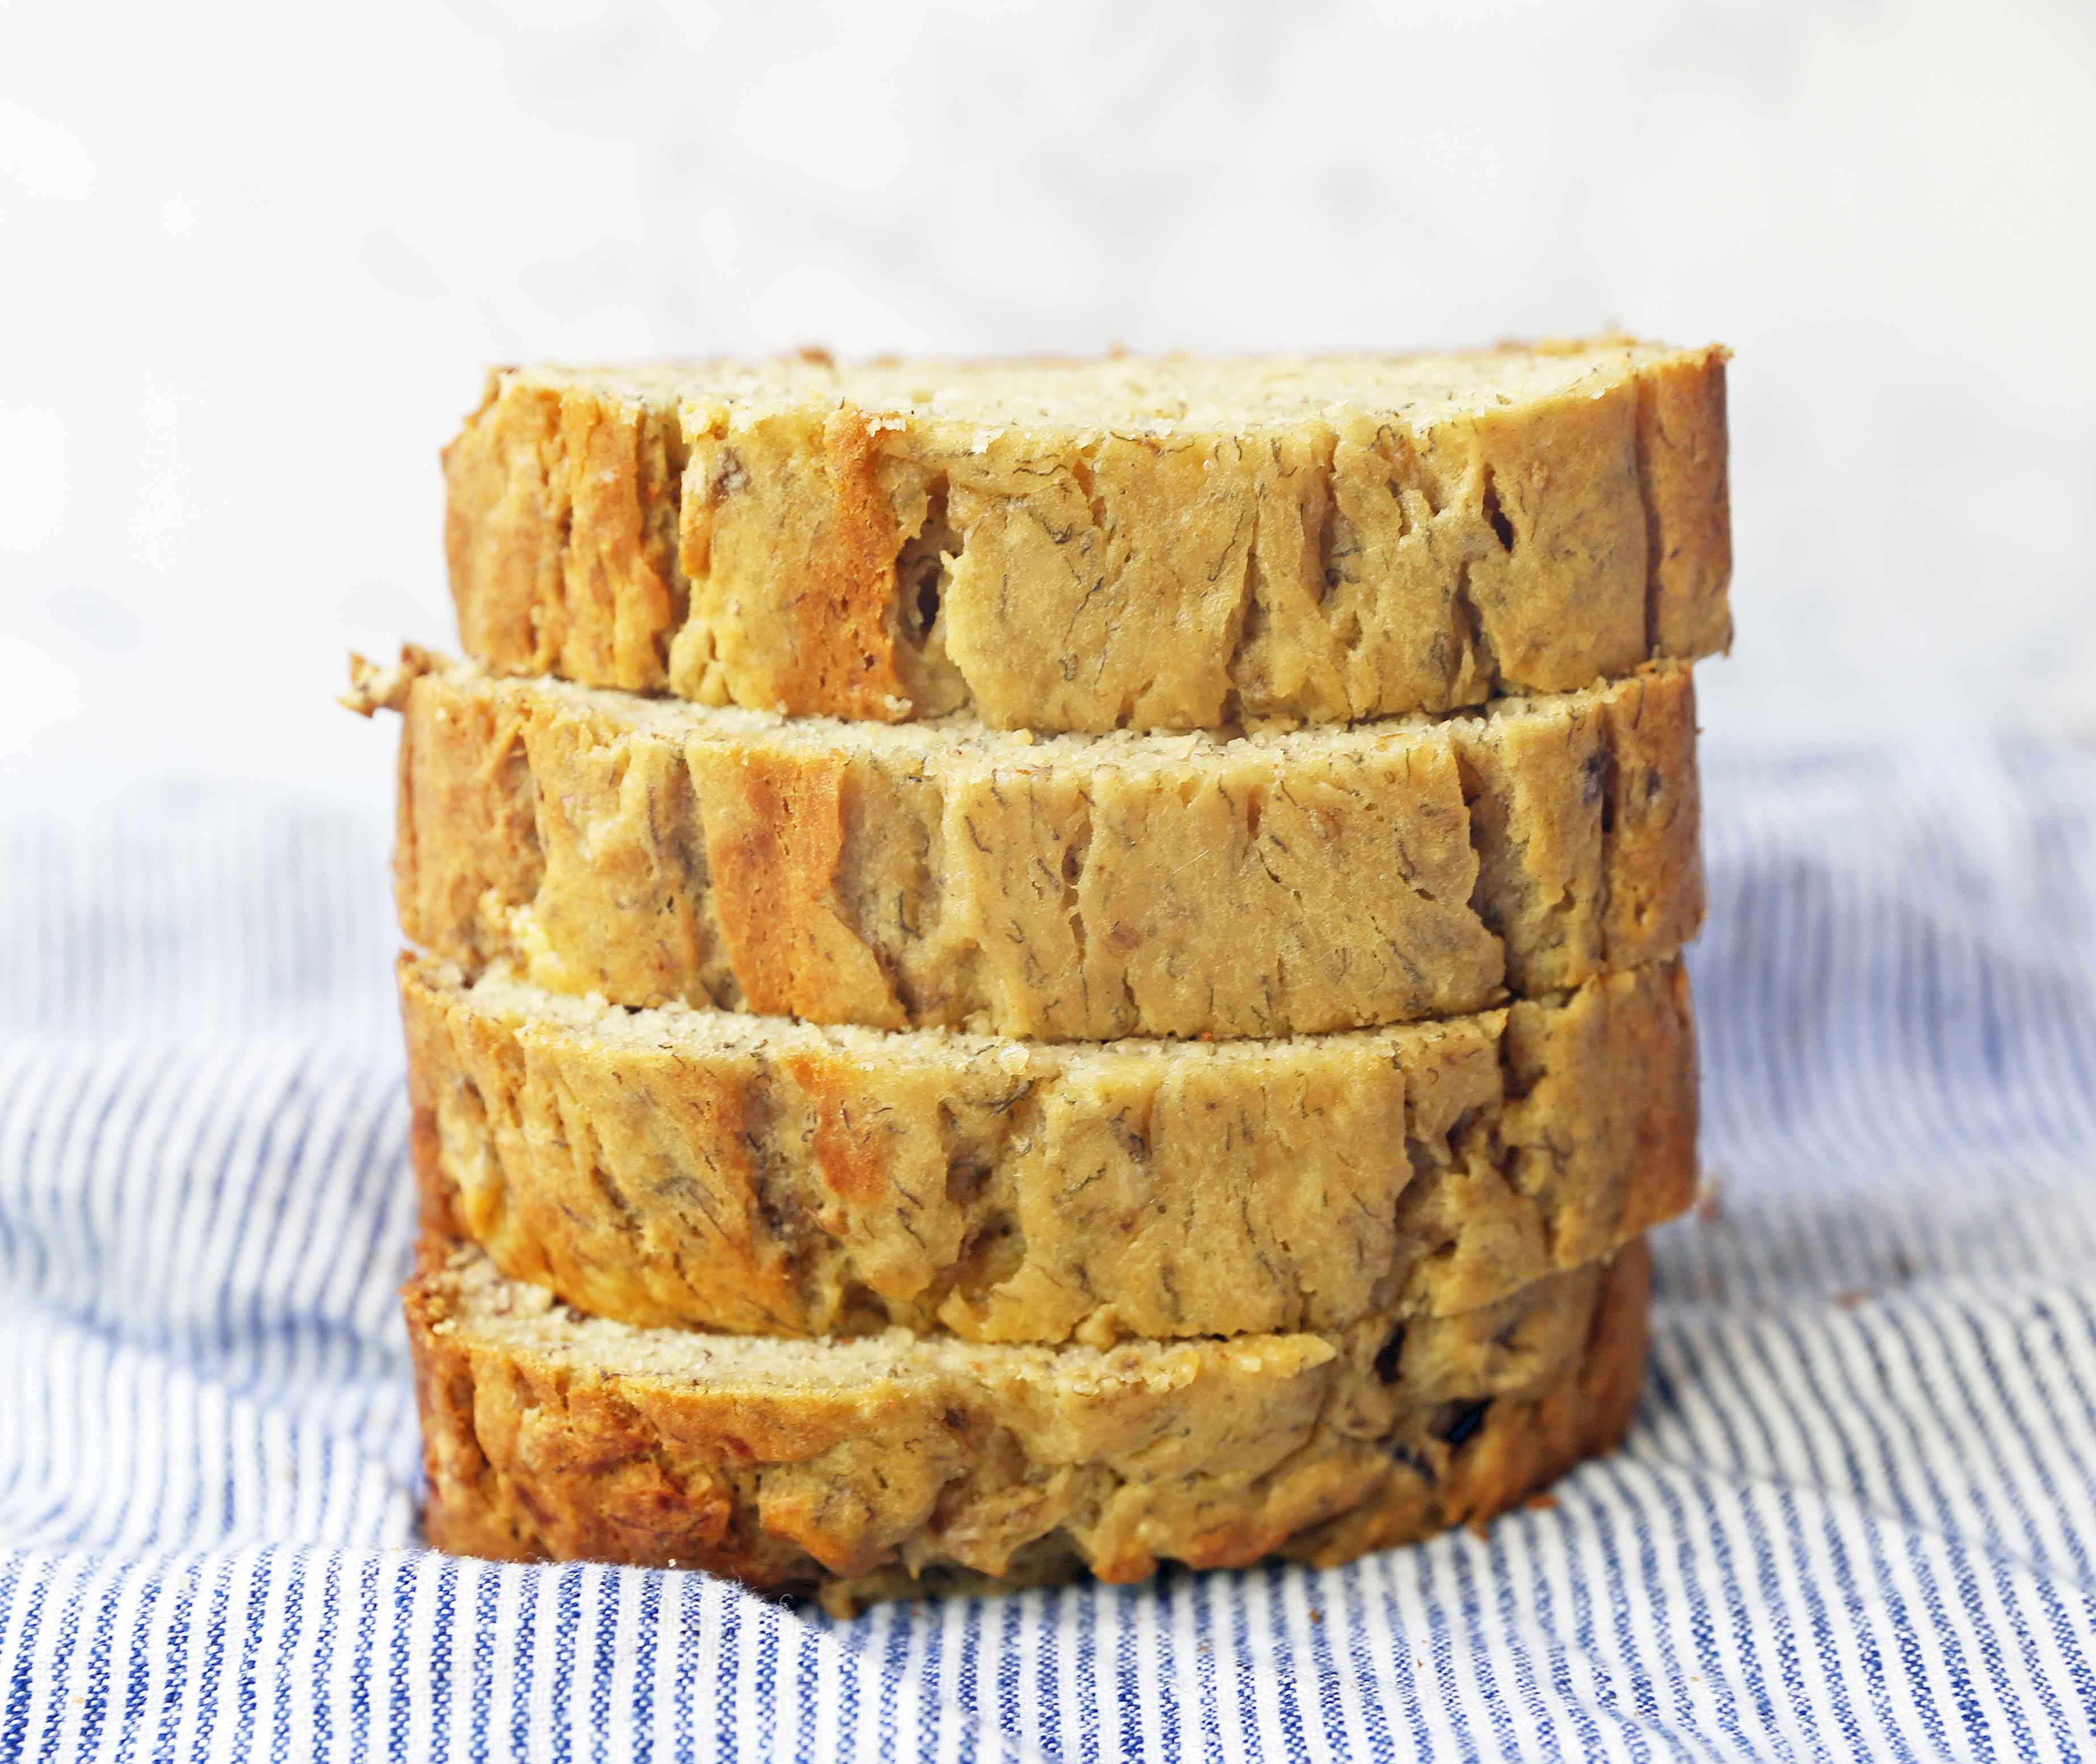 The BEST Banana Bread Recipe. How to make the perfect moist and flavorful banana bread recipe that is worthy of being slathered in butter. The best banana bread recipe! www.modernhoney.com #bananabread #quickbread #bananarecipes